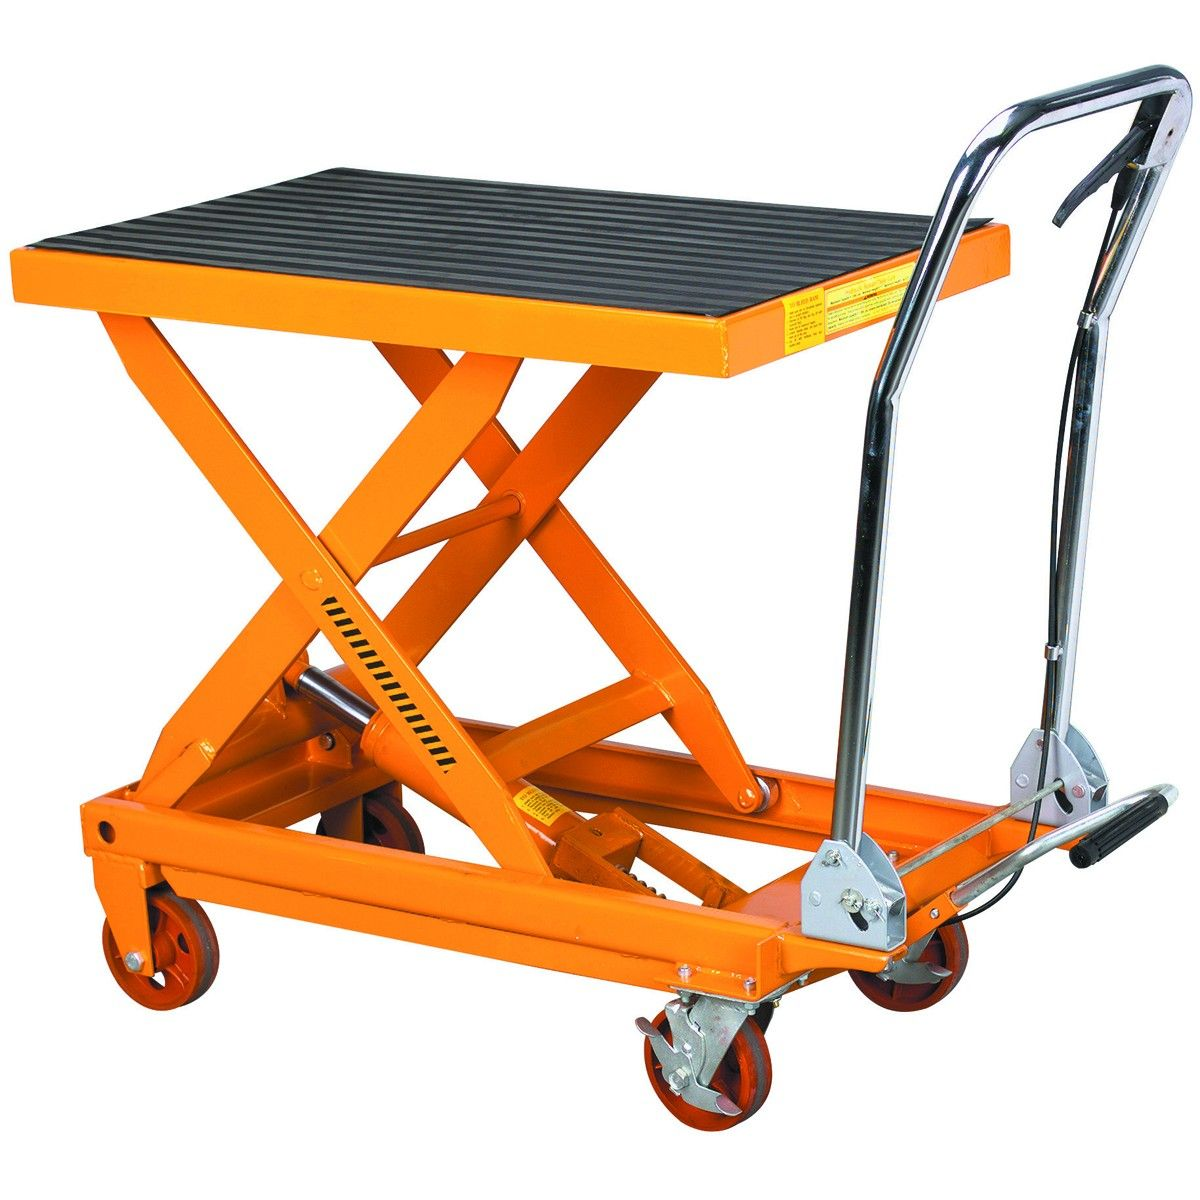 Tractor Water Lift : Lb capacity hydraulic table cart scissors